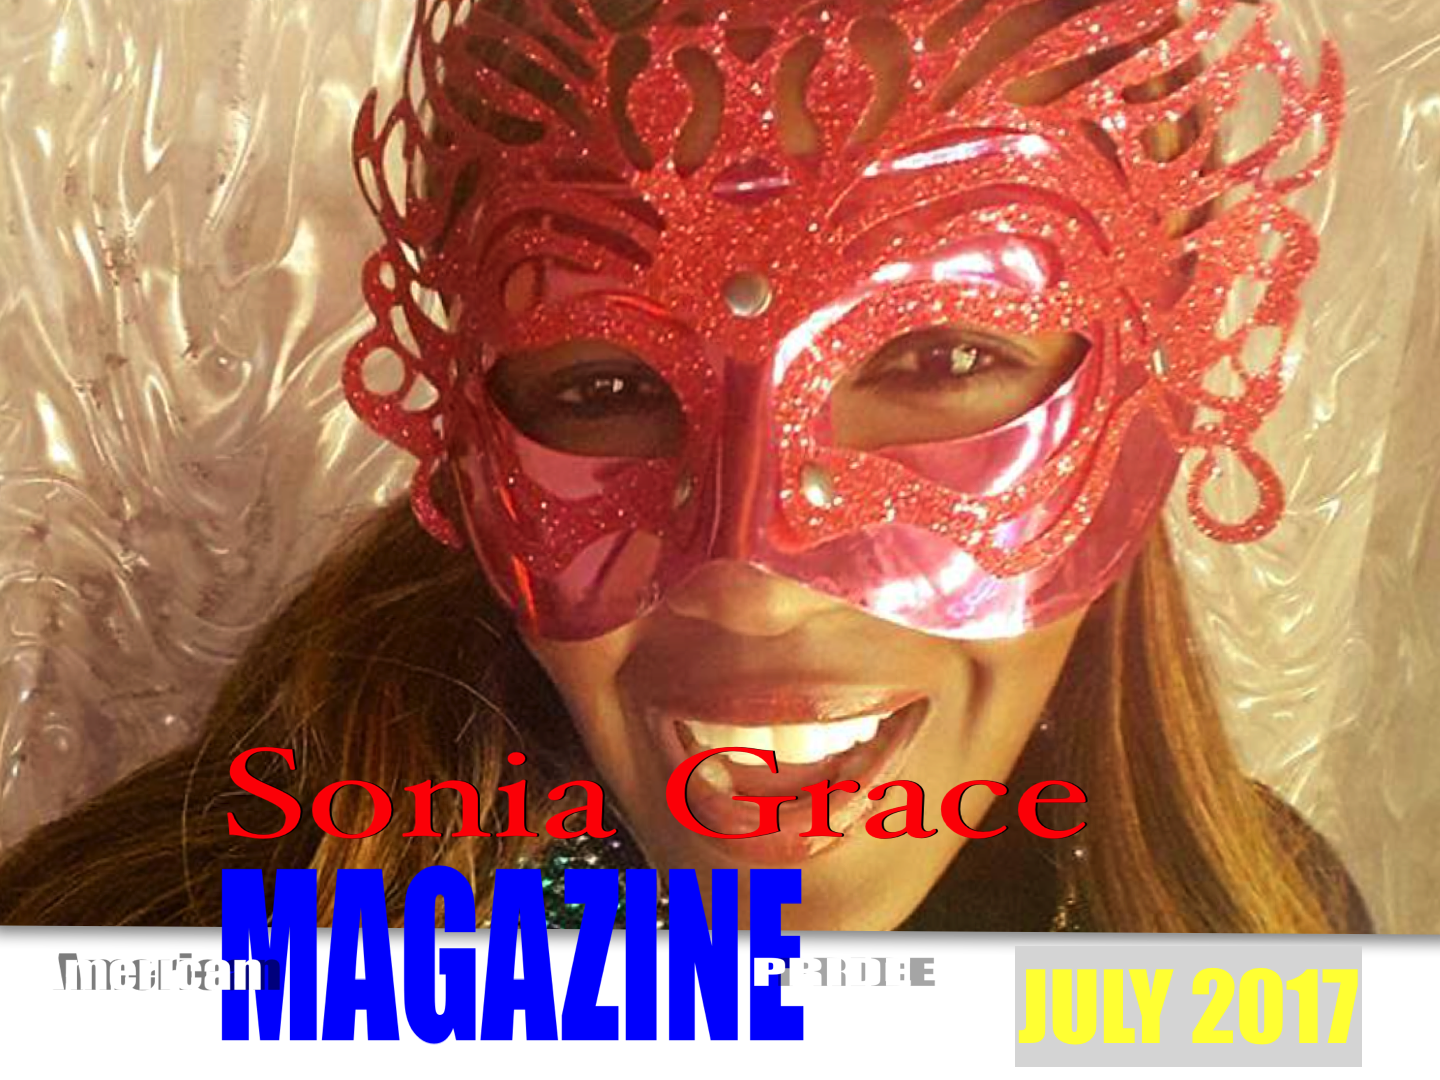 Sonia Grace Dealing with Insecurities